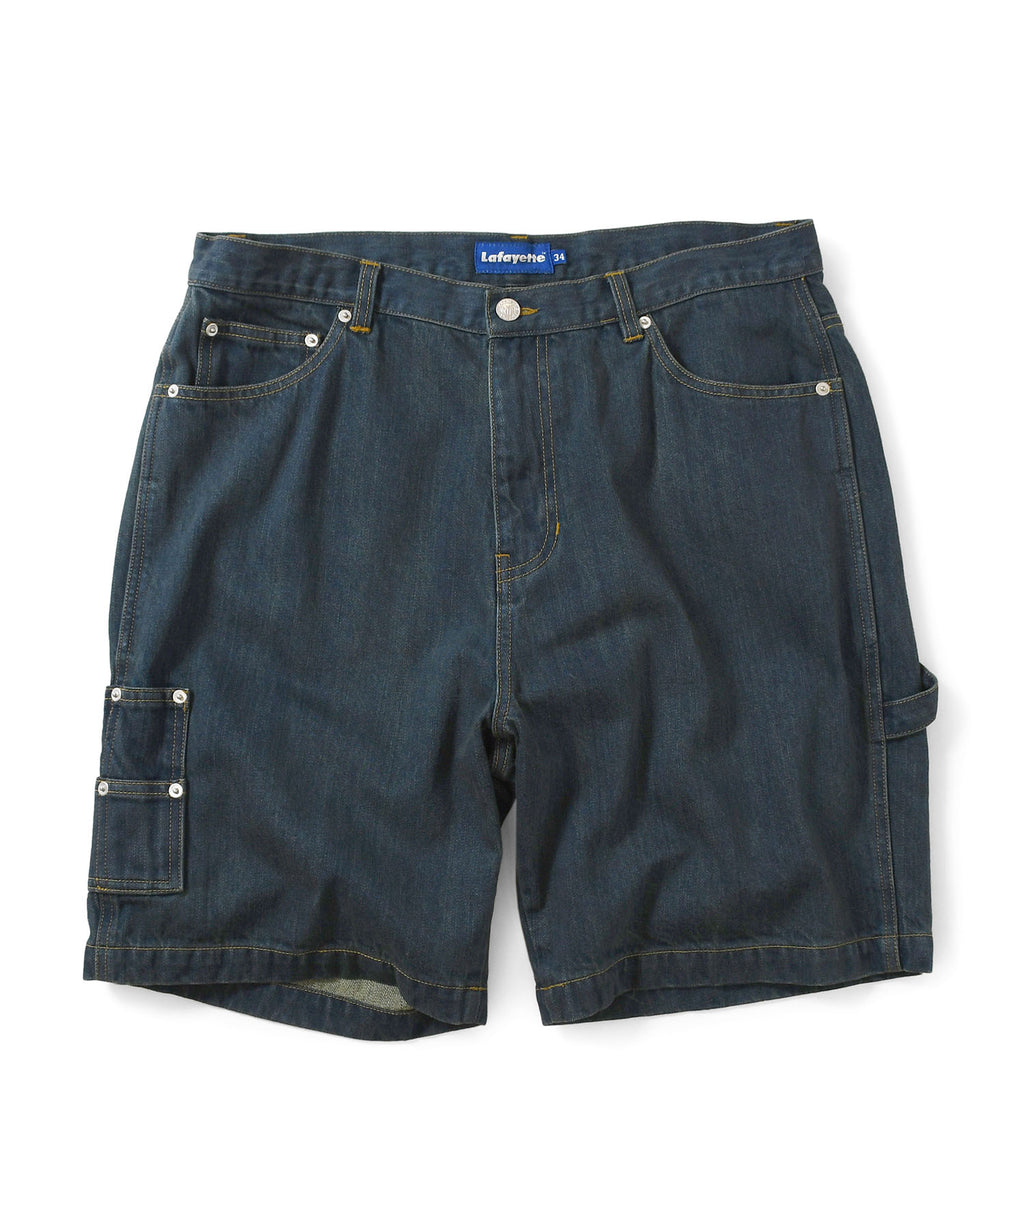 Lafayette DENIM PAINTER SHORTS LS201301 INDIGO BLUE